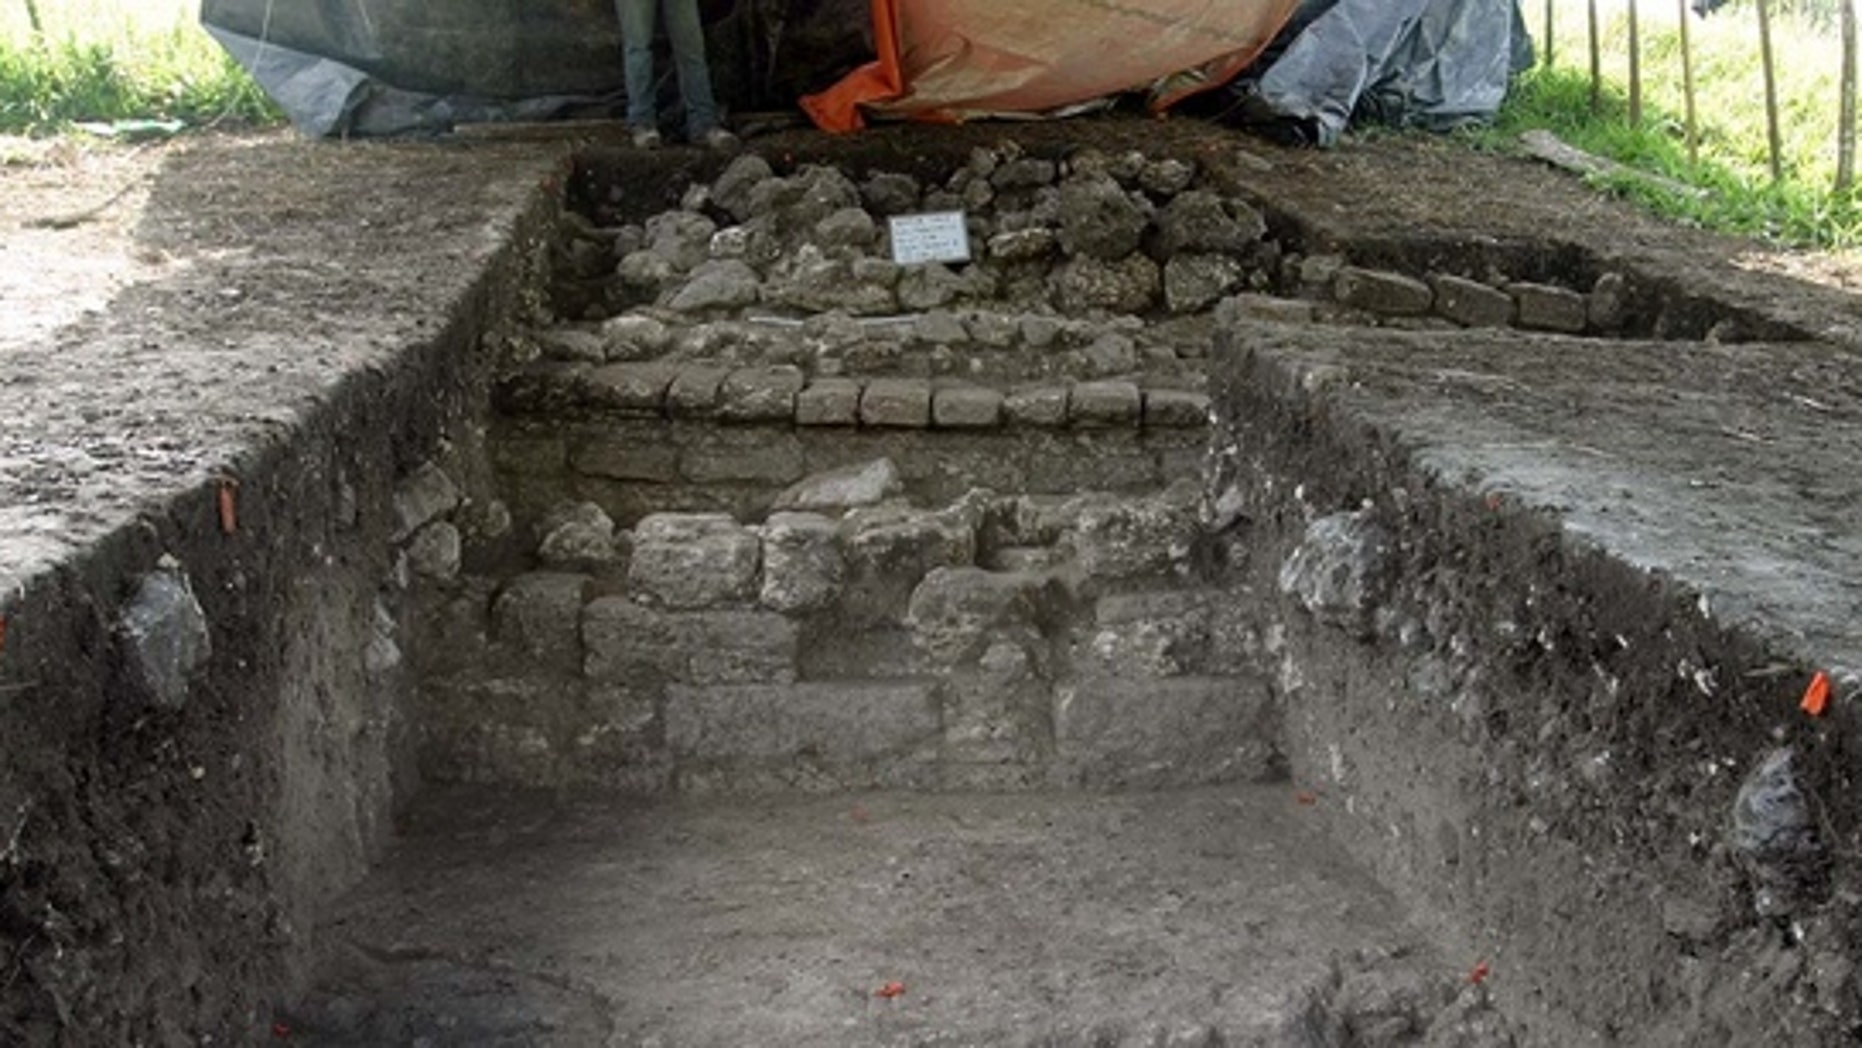 In the course of excavating remains of the Mayan city, archaeologists uncovered a corridor containing shiny white plaster that originally would have covered the city.